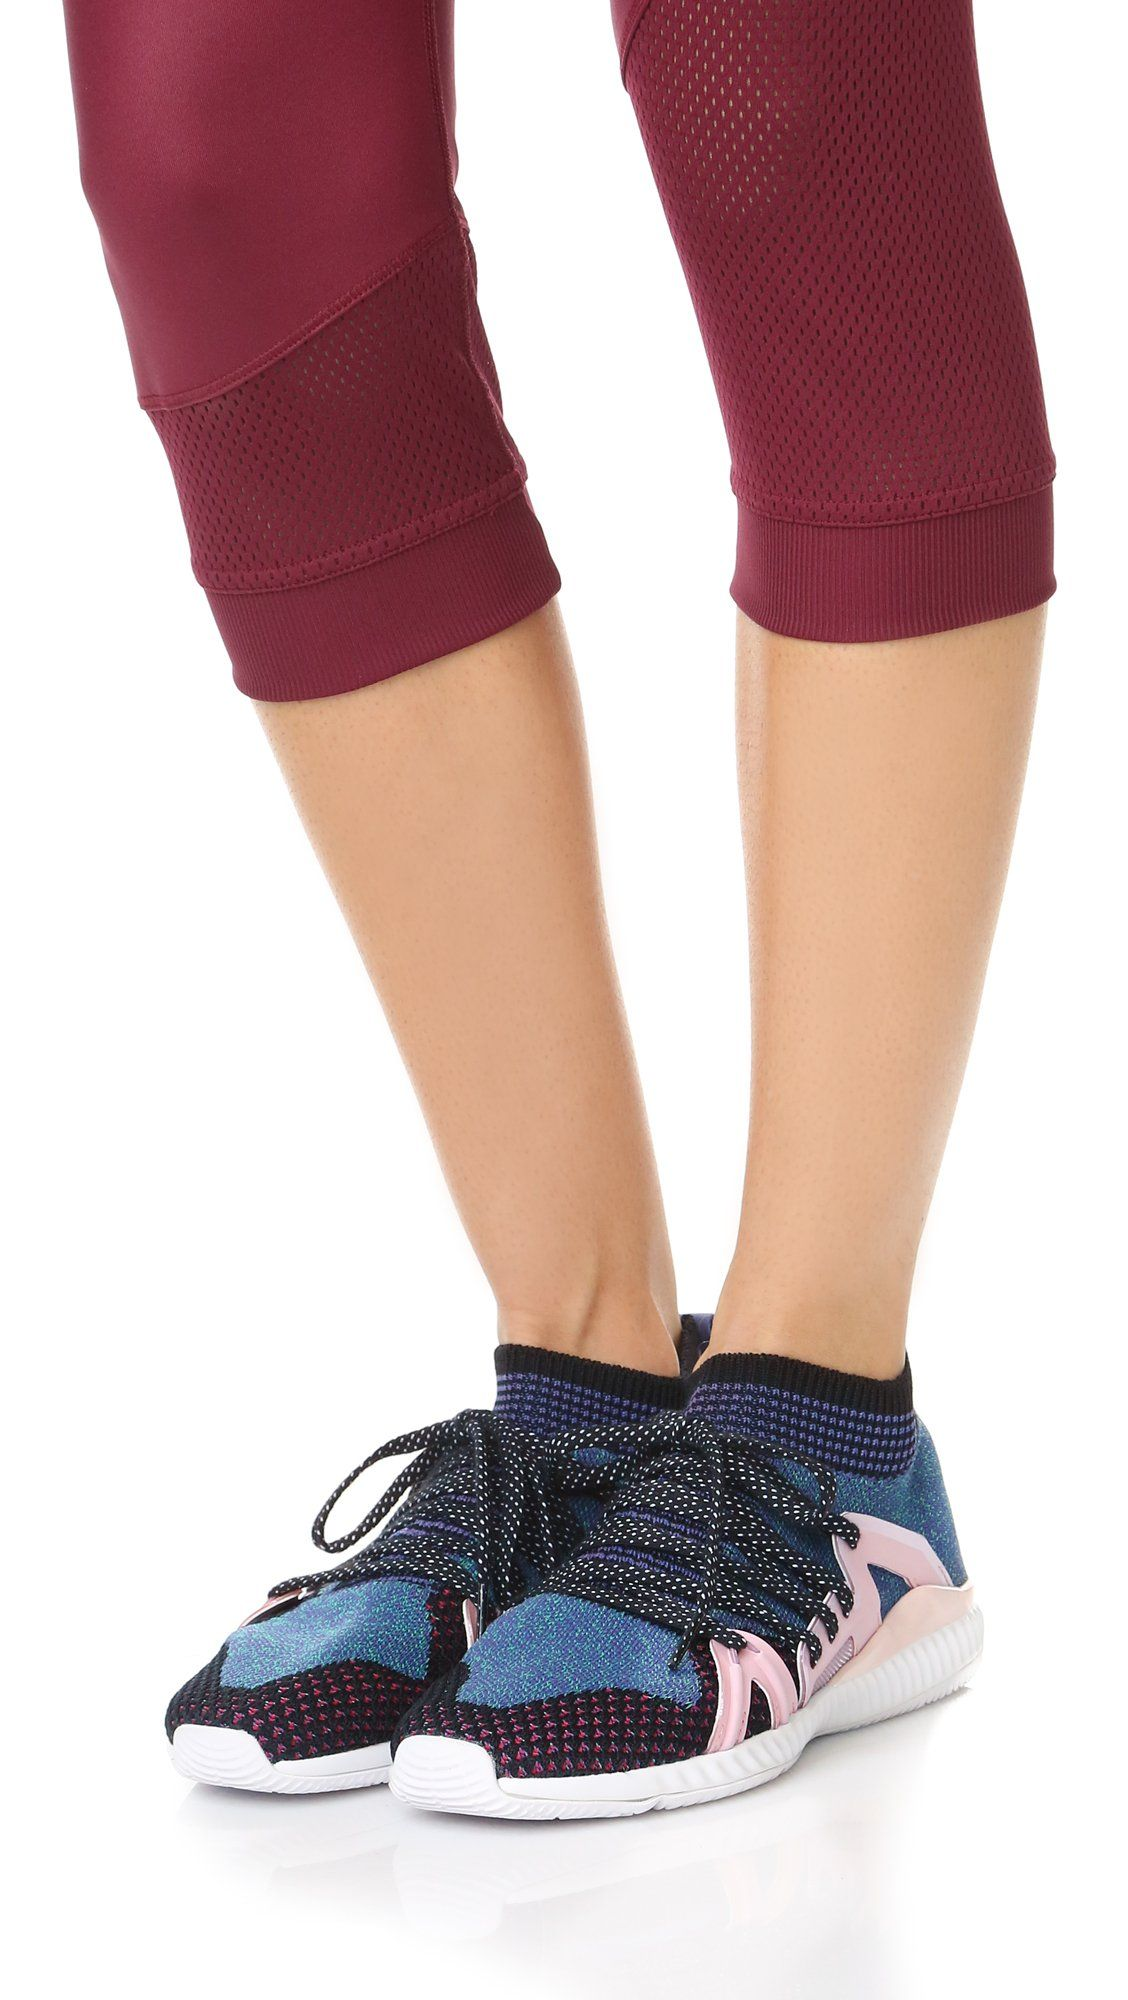 a4c0d133437 adidas by Stella McCartney Womens Crazymove Bounce Sneakers Black and  White Plum Ballet 9 BM US -- Click on the image for additional details.